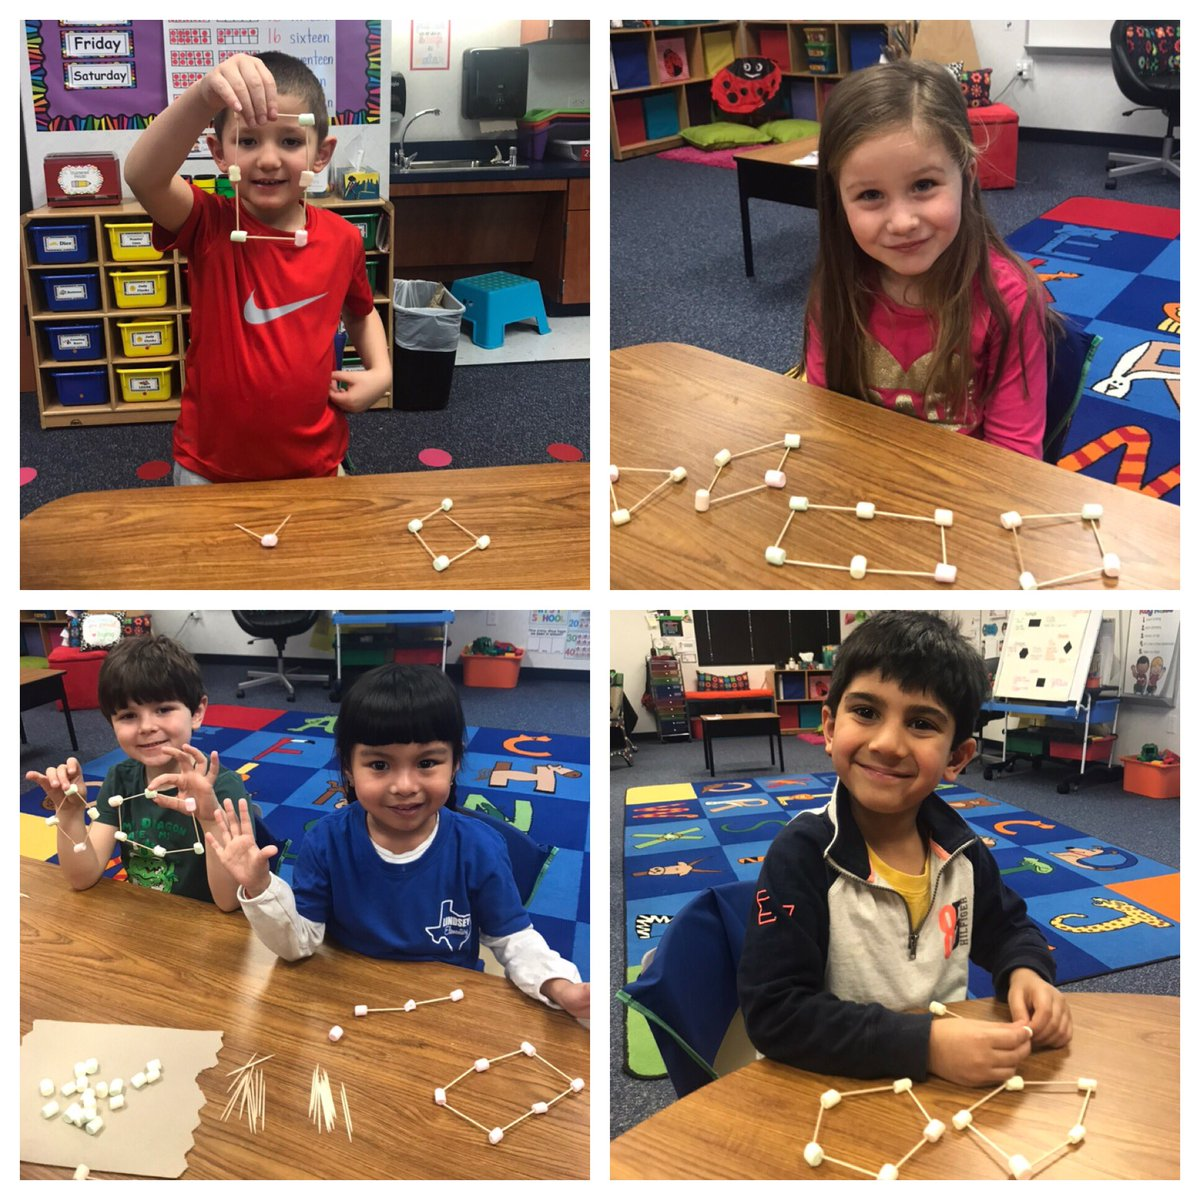 Math fun with marshmallows for the win!!  The kids LOVED building 2D shapes out of marshmallows and toothpicks! .....andddd maybe eating a few here and there  #fridayfun @LindseyElem<br>http://pic.twitter.com/G8DUofO5y2